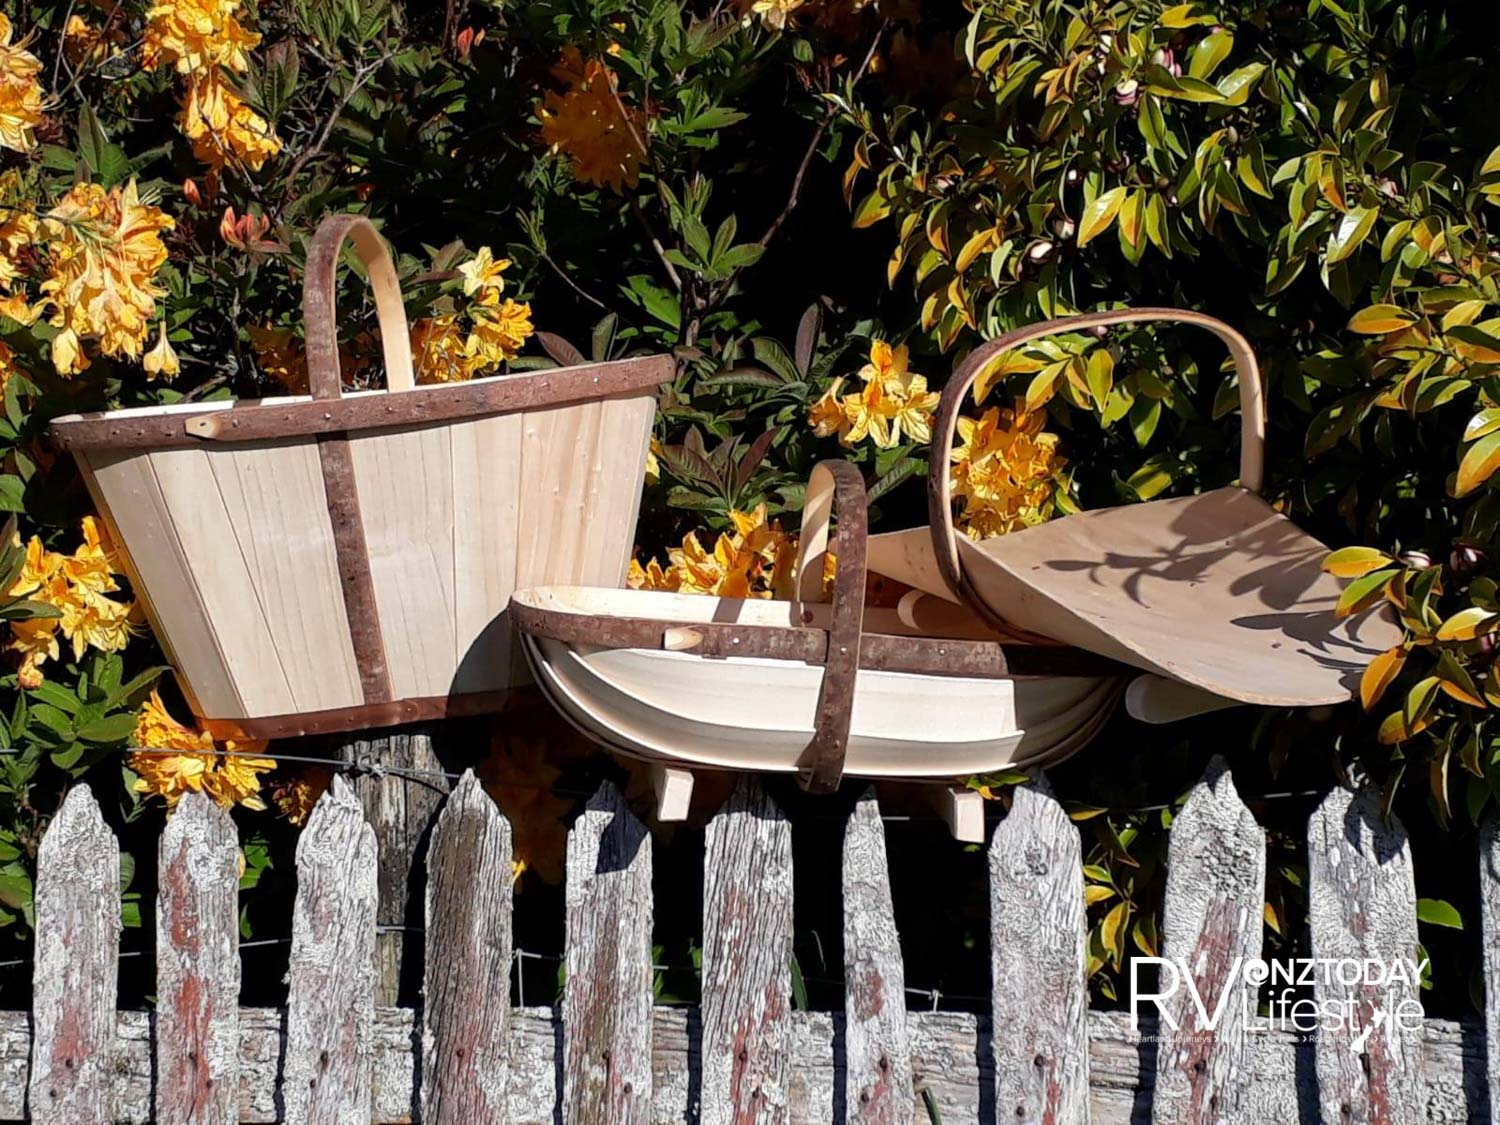 The maund, trug and flower basket, handcrafted by trug maker Tony Hitchcock (Photo: Supplied)